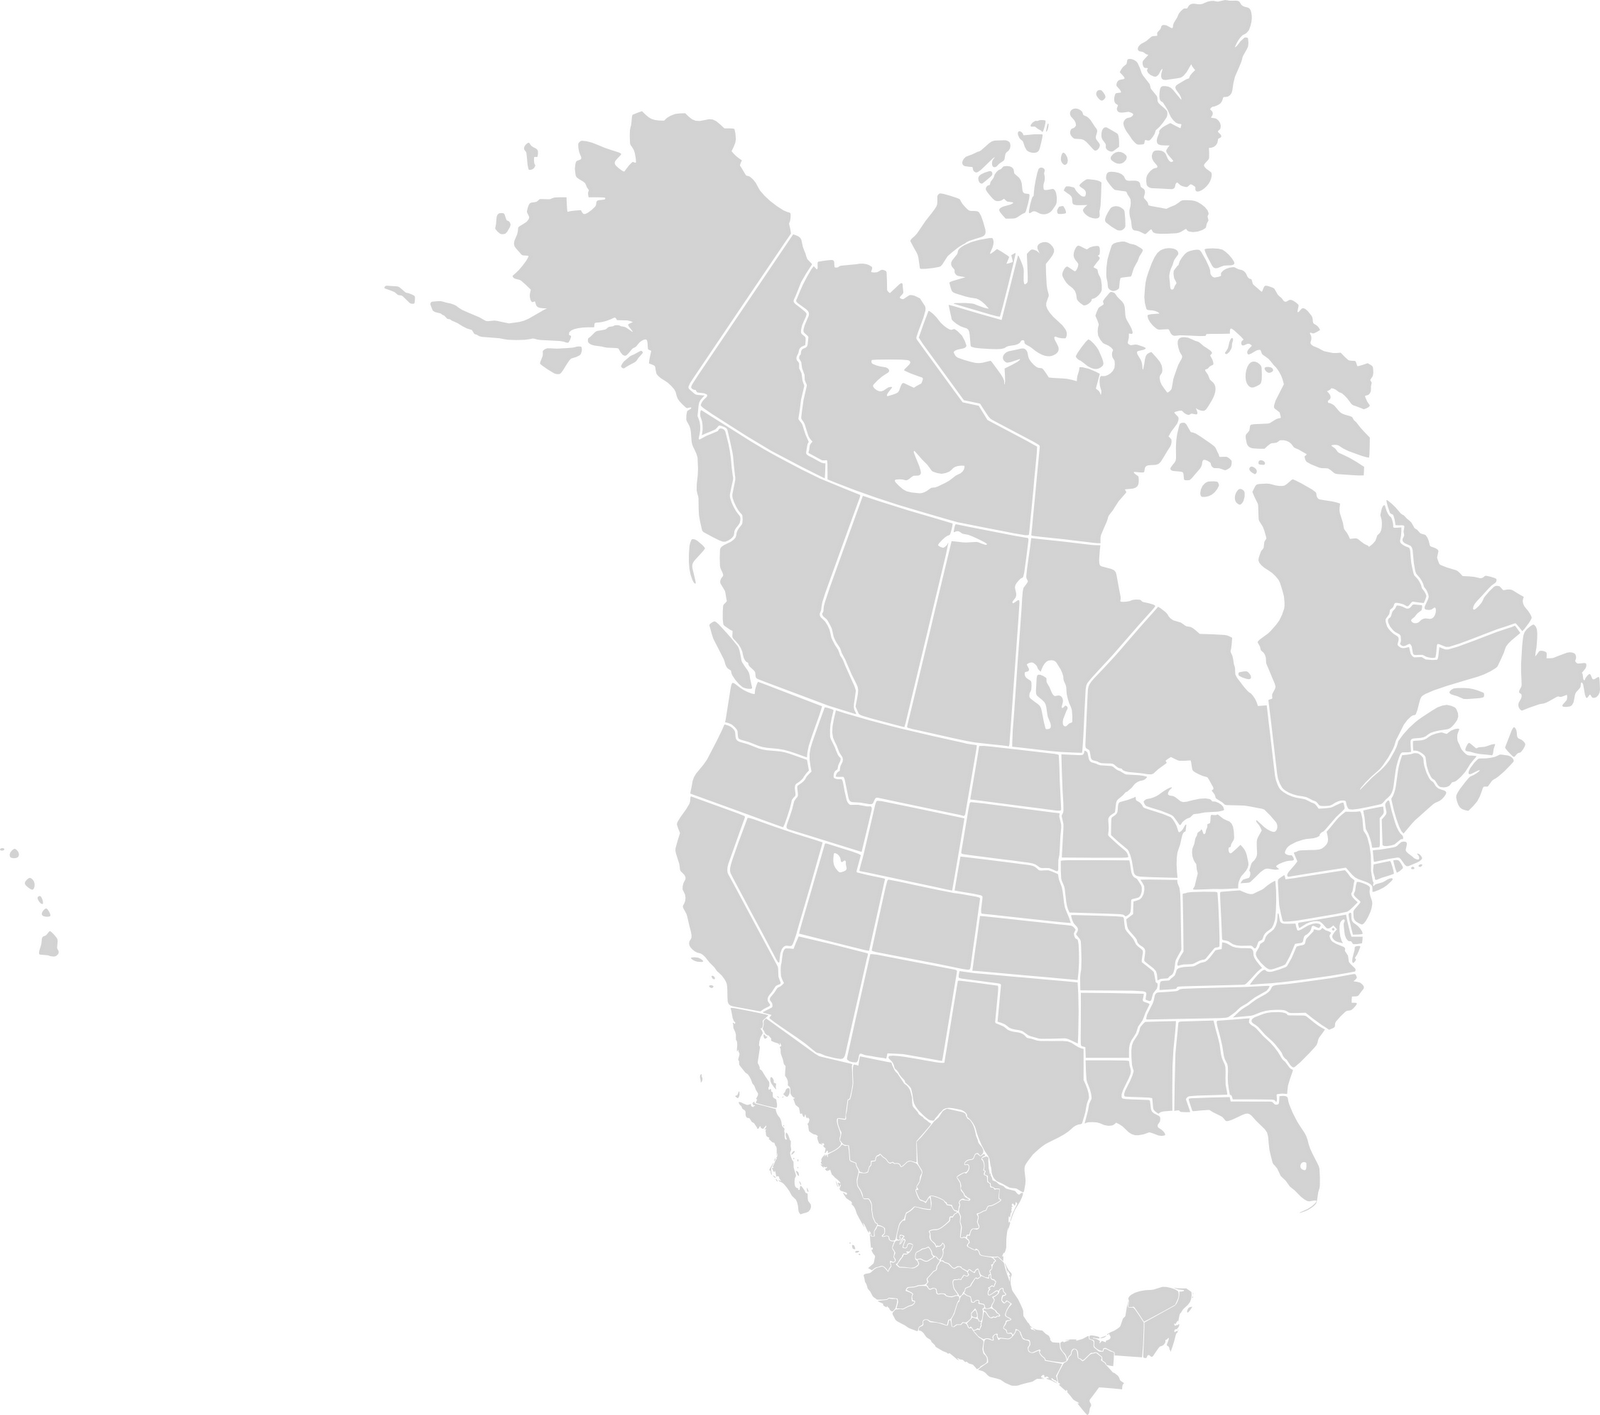 maps of dallas: Blank Map of North America